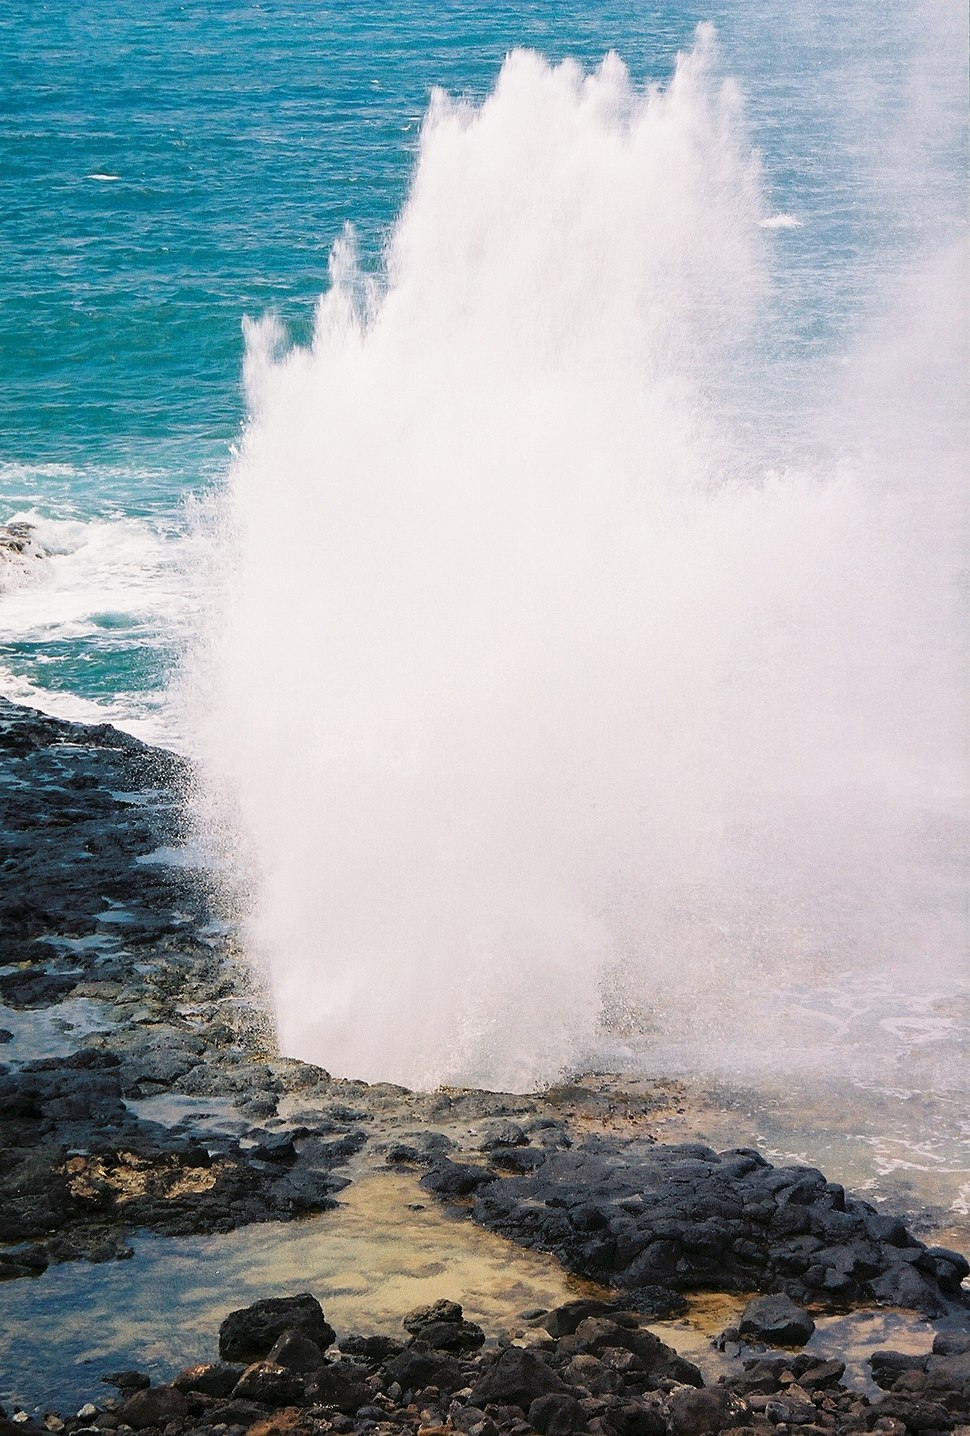 Spouting horn.mh